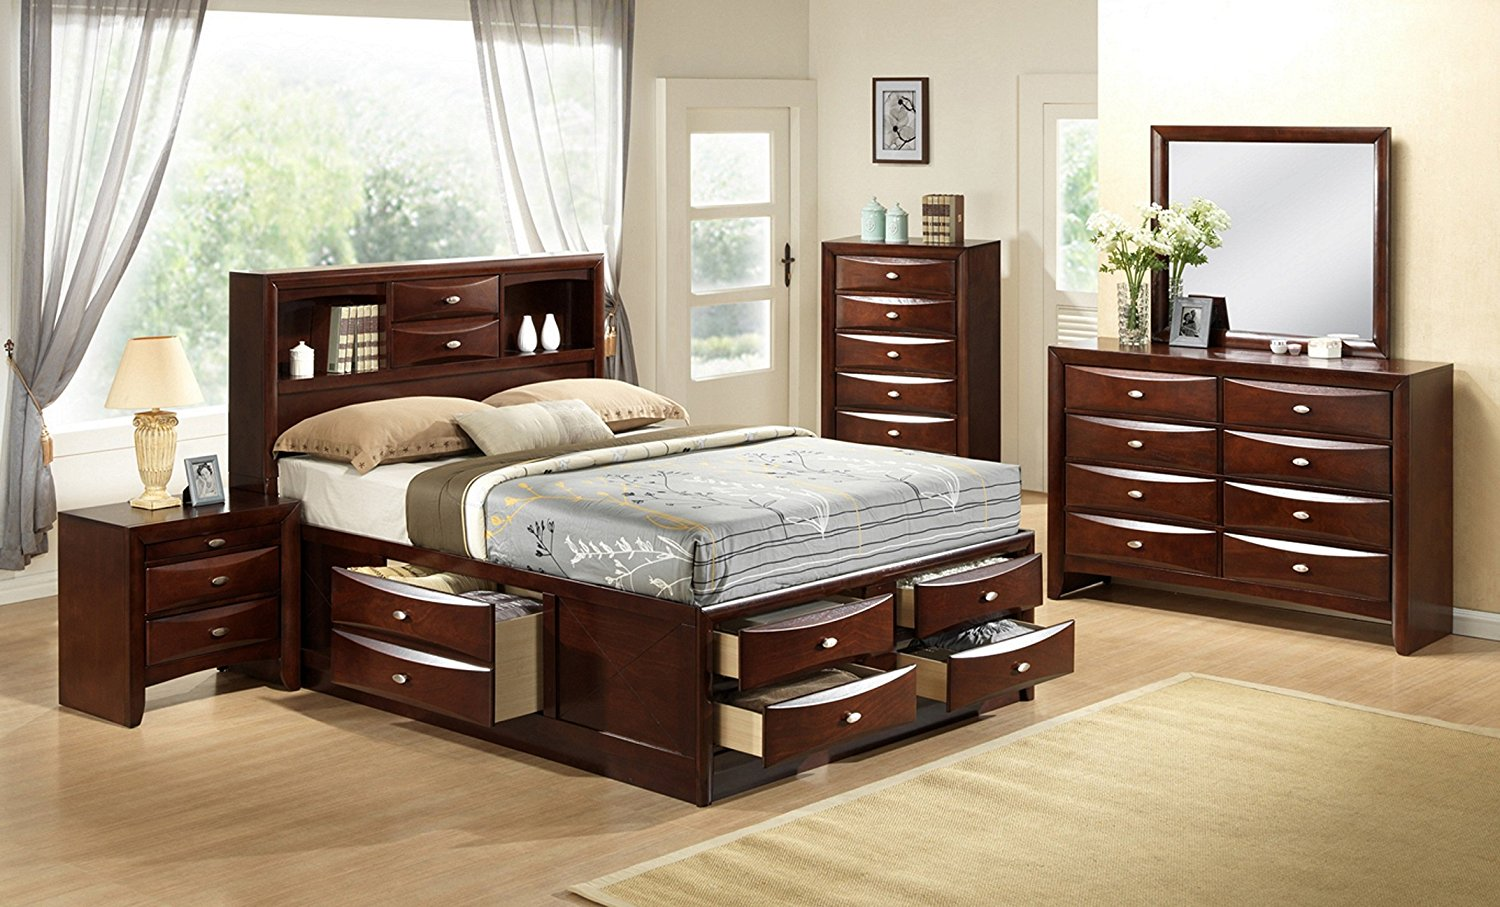 Image of: California King Storage Bed Queen